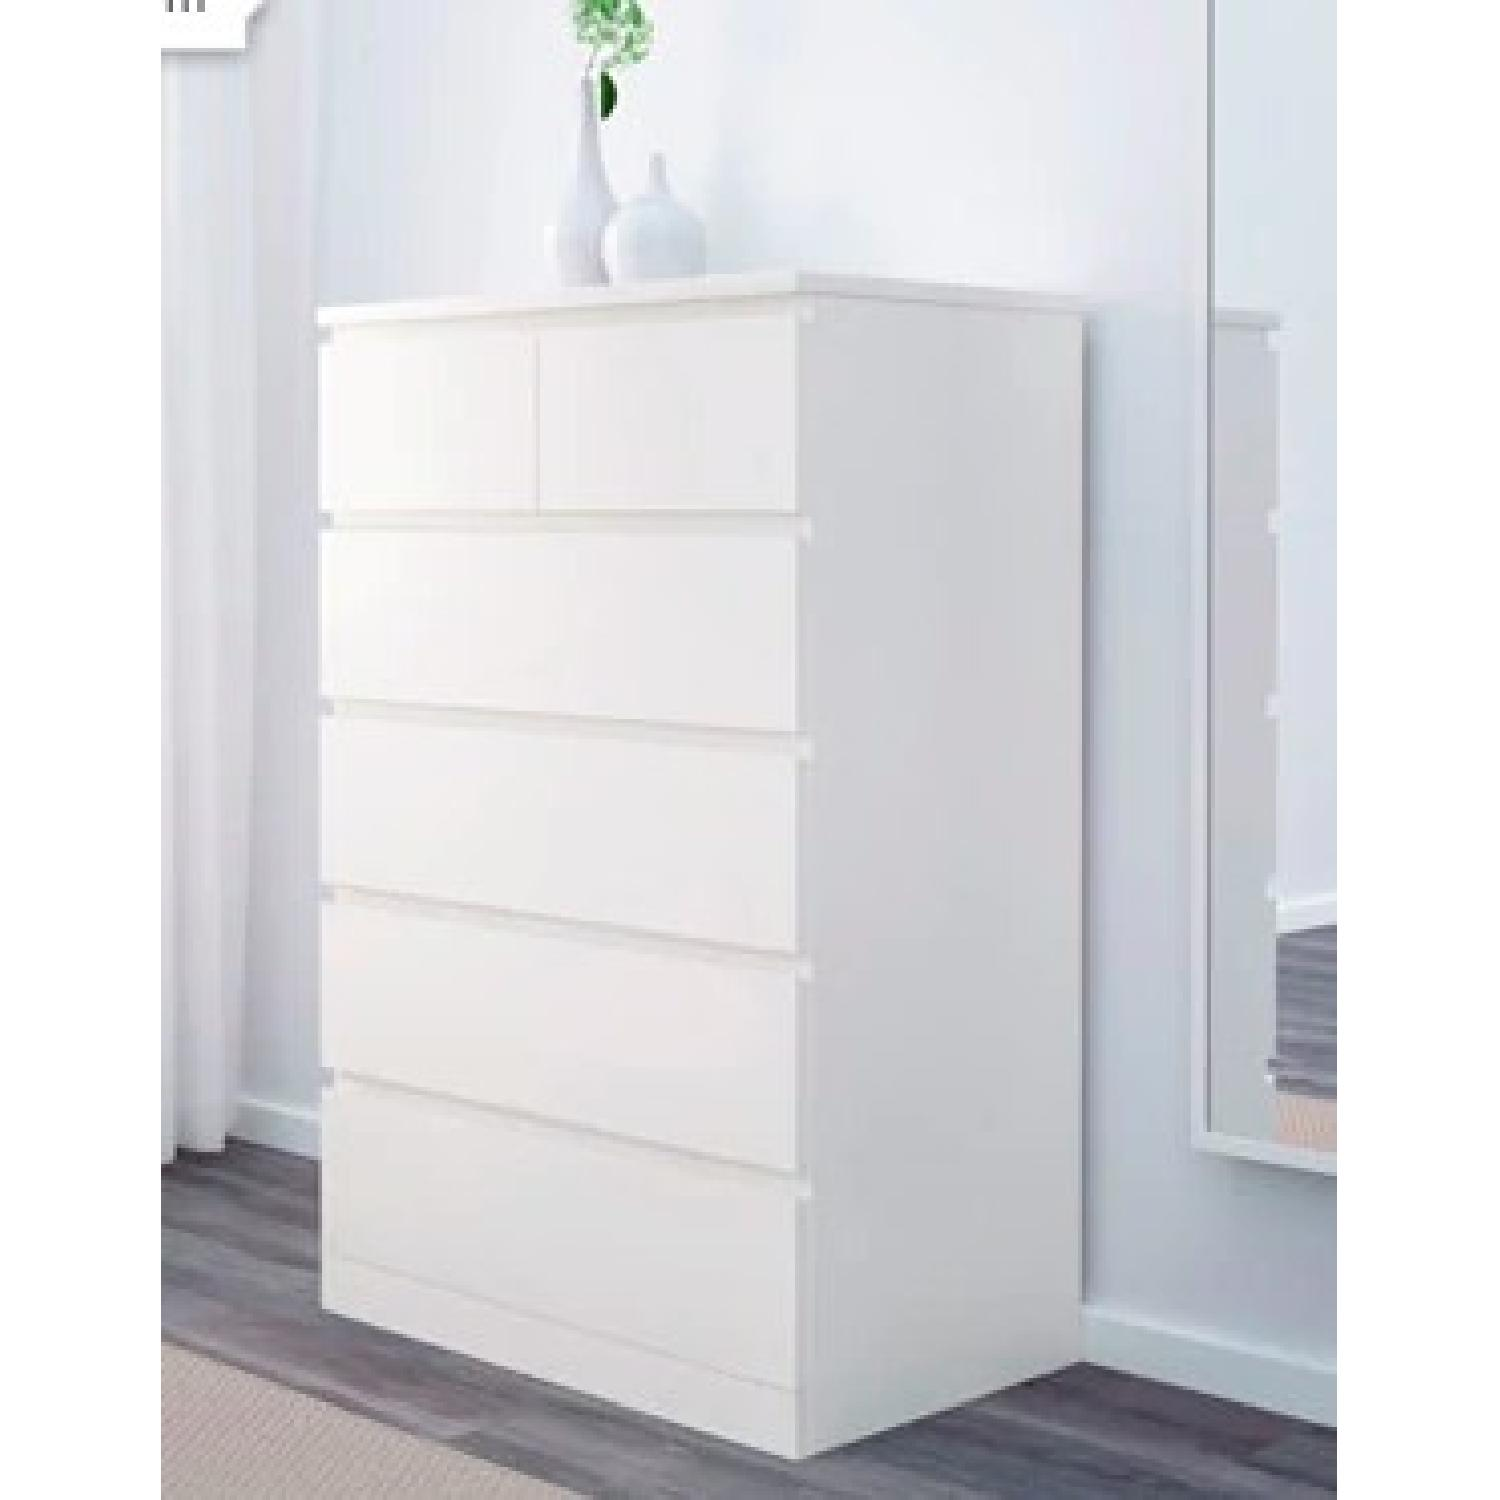 ... Ikea Malm 6 Drawer Chest W/ Glass Top 1